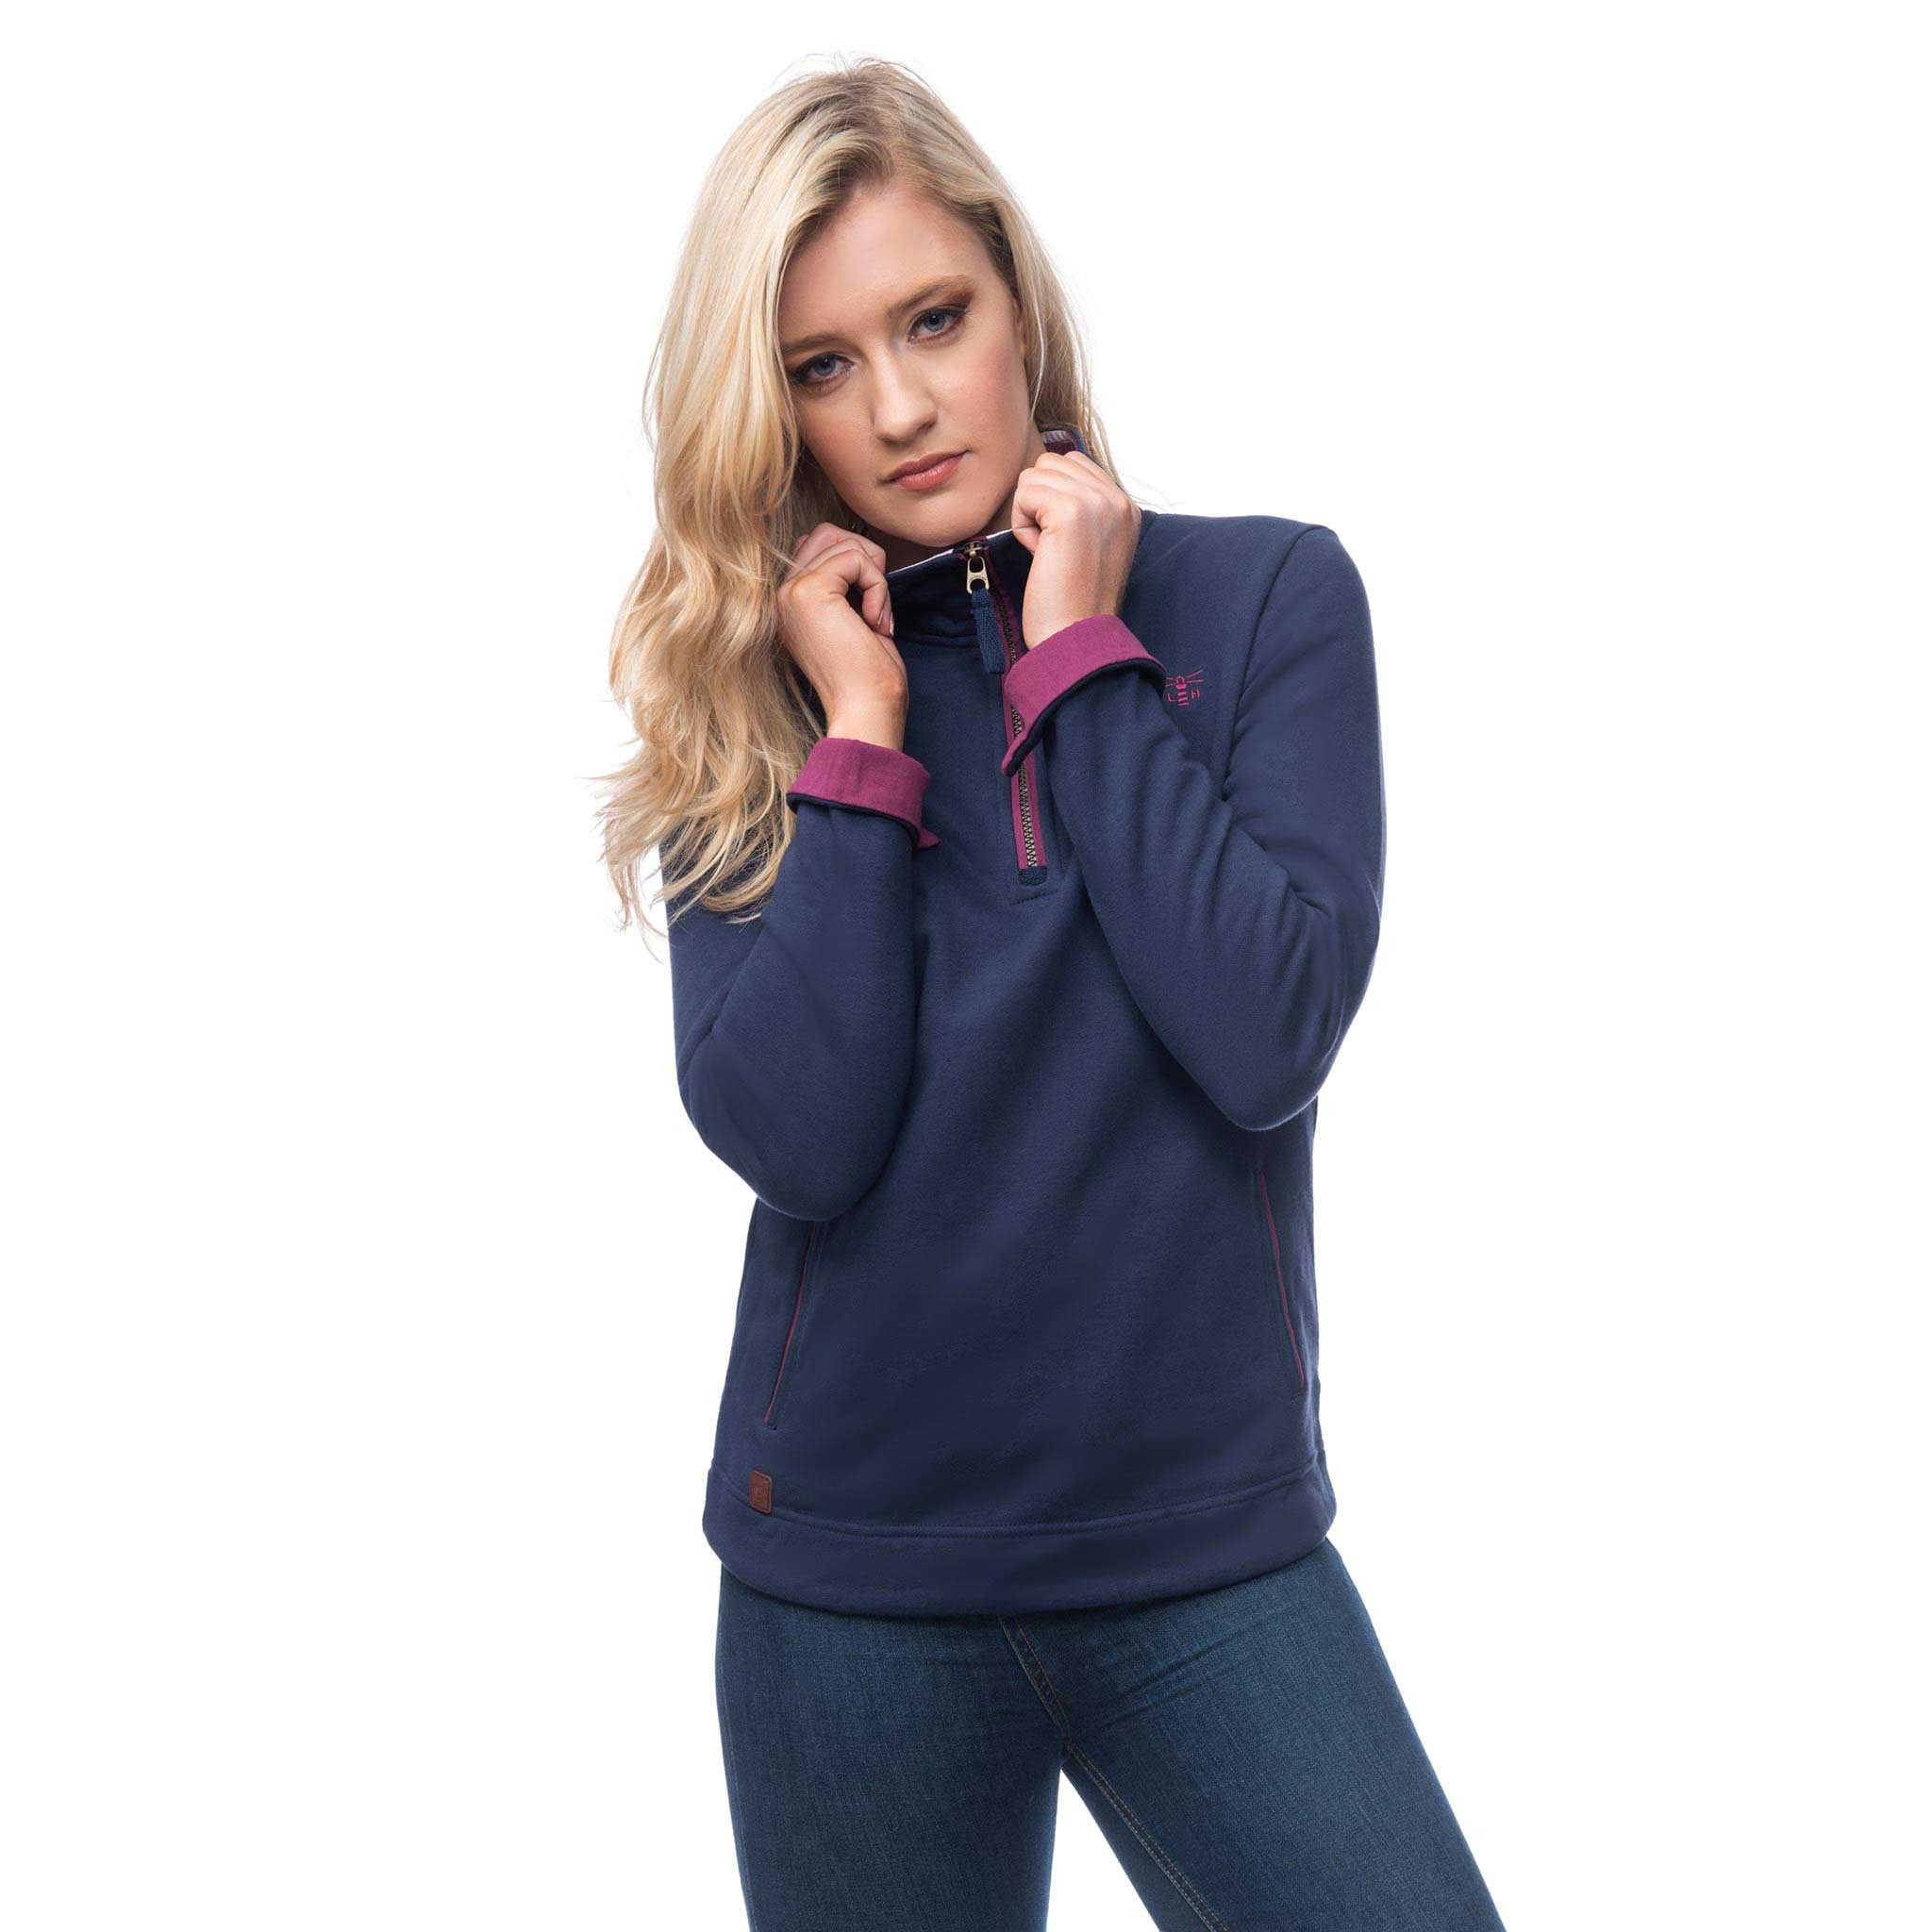 Lighthouse Womens Skye Half Zip Cotton Sweatshirt in Navy. Cuff turn back.